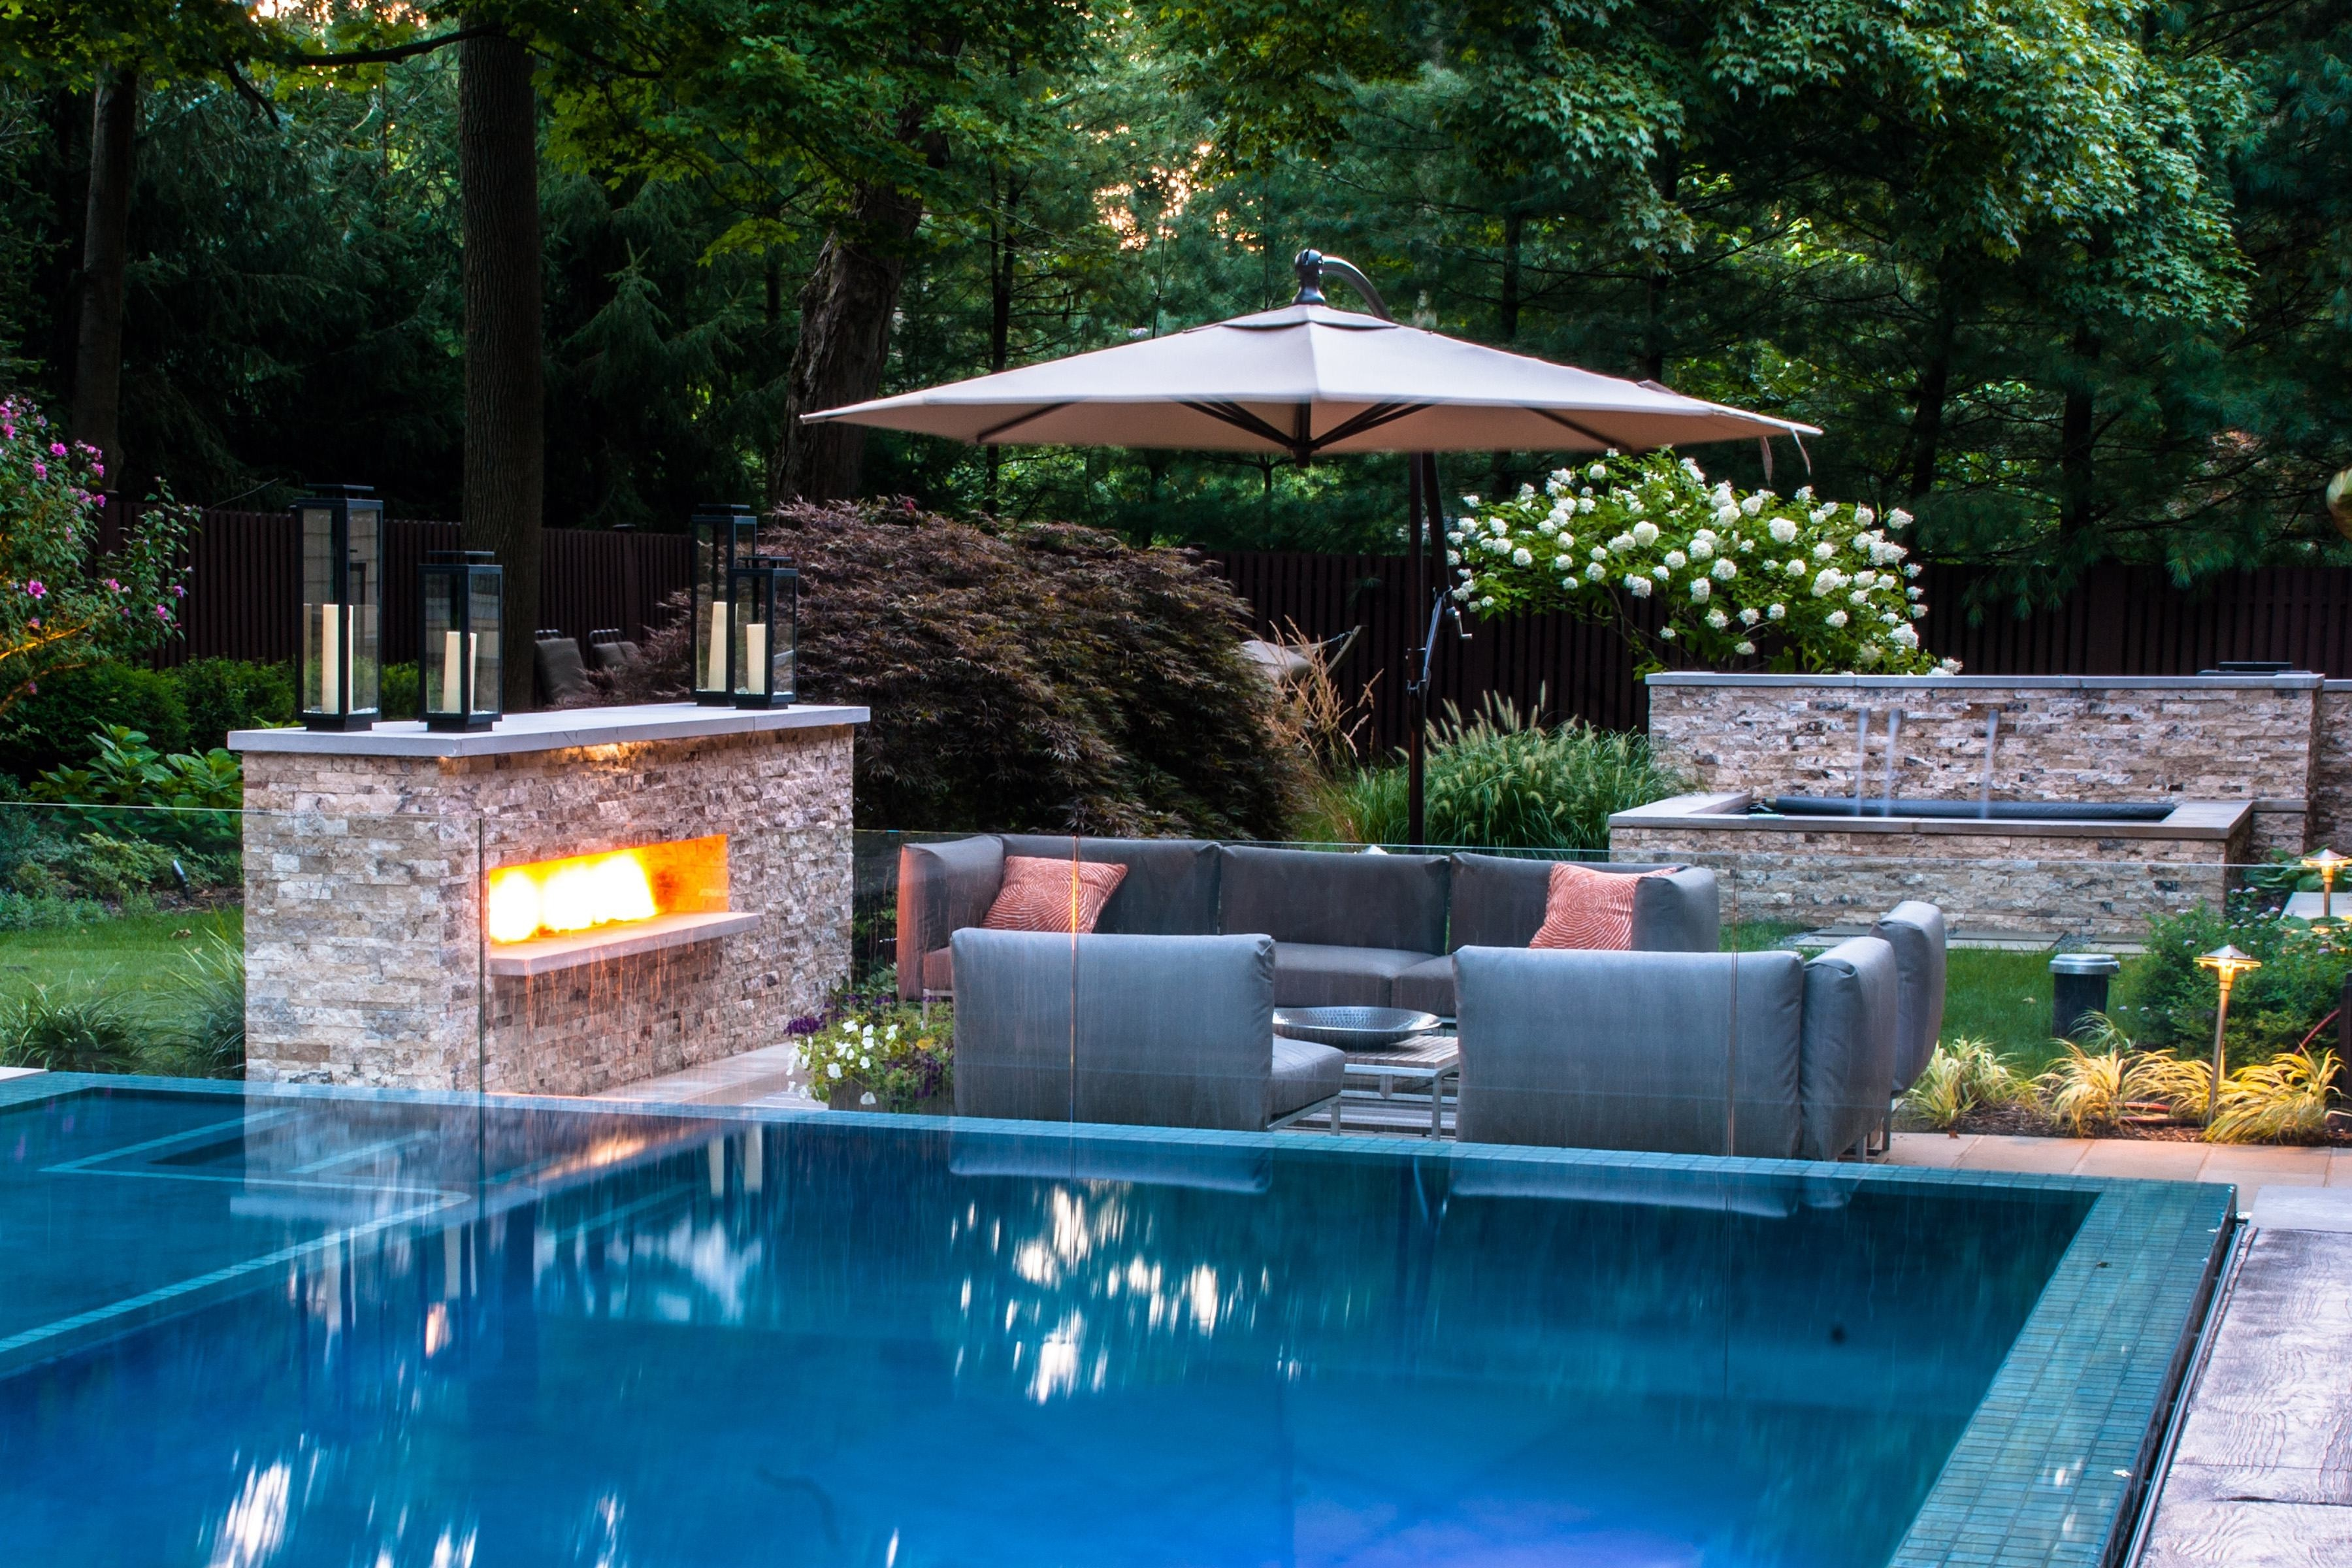 Backyard Pool And Landscaping Ideas Turismoestrategicoco within Small Backyard With Pool Landscaping Ideas